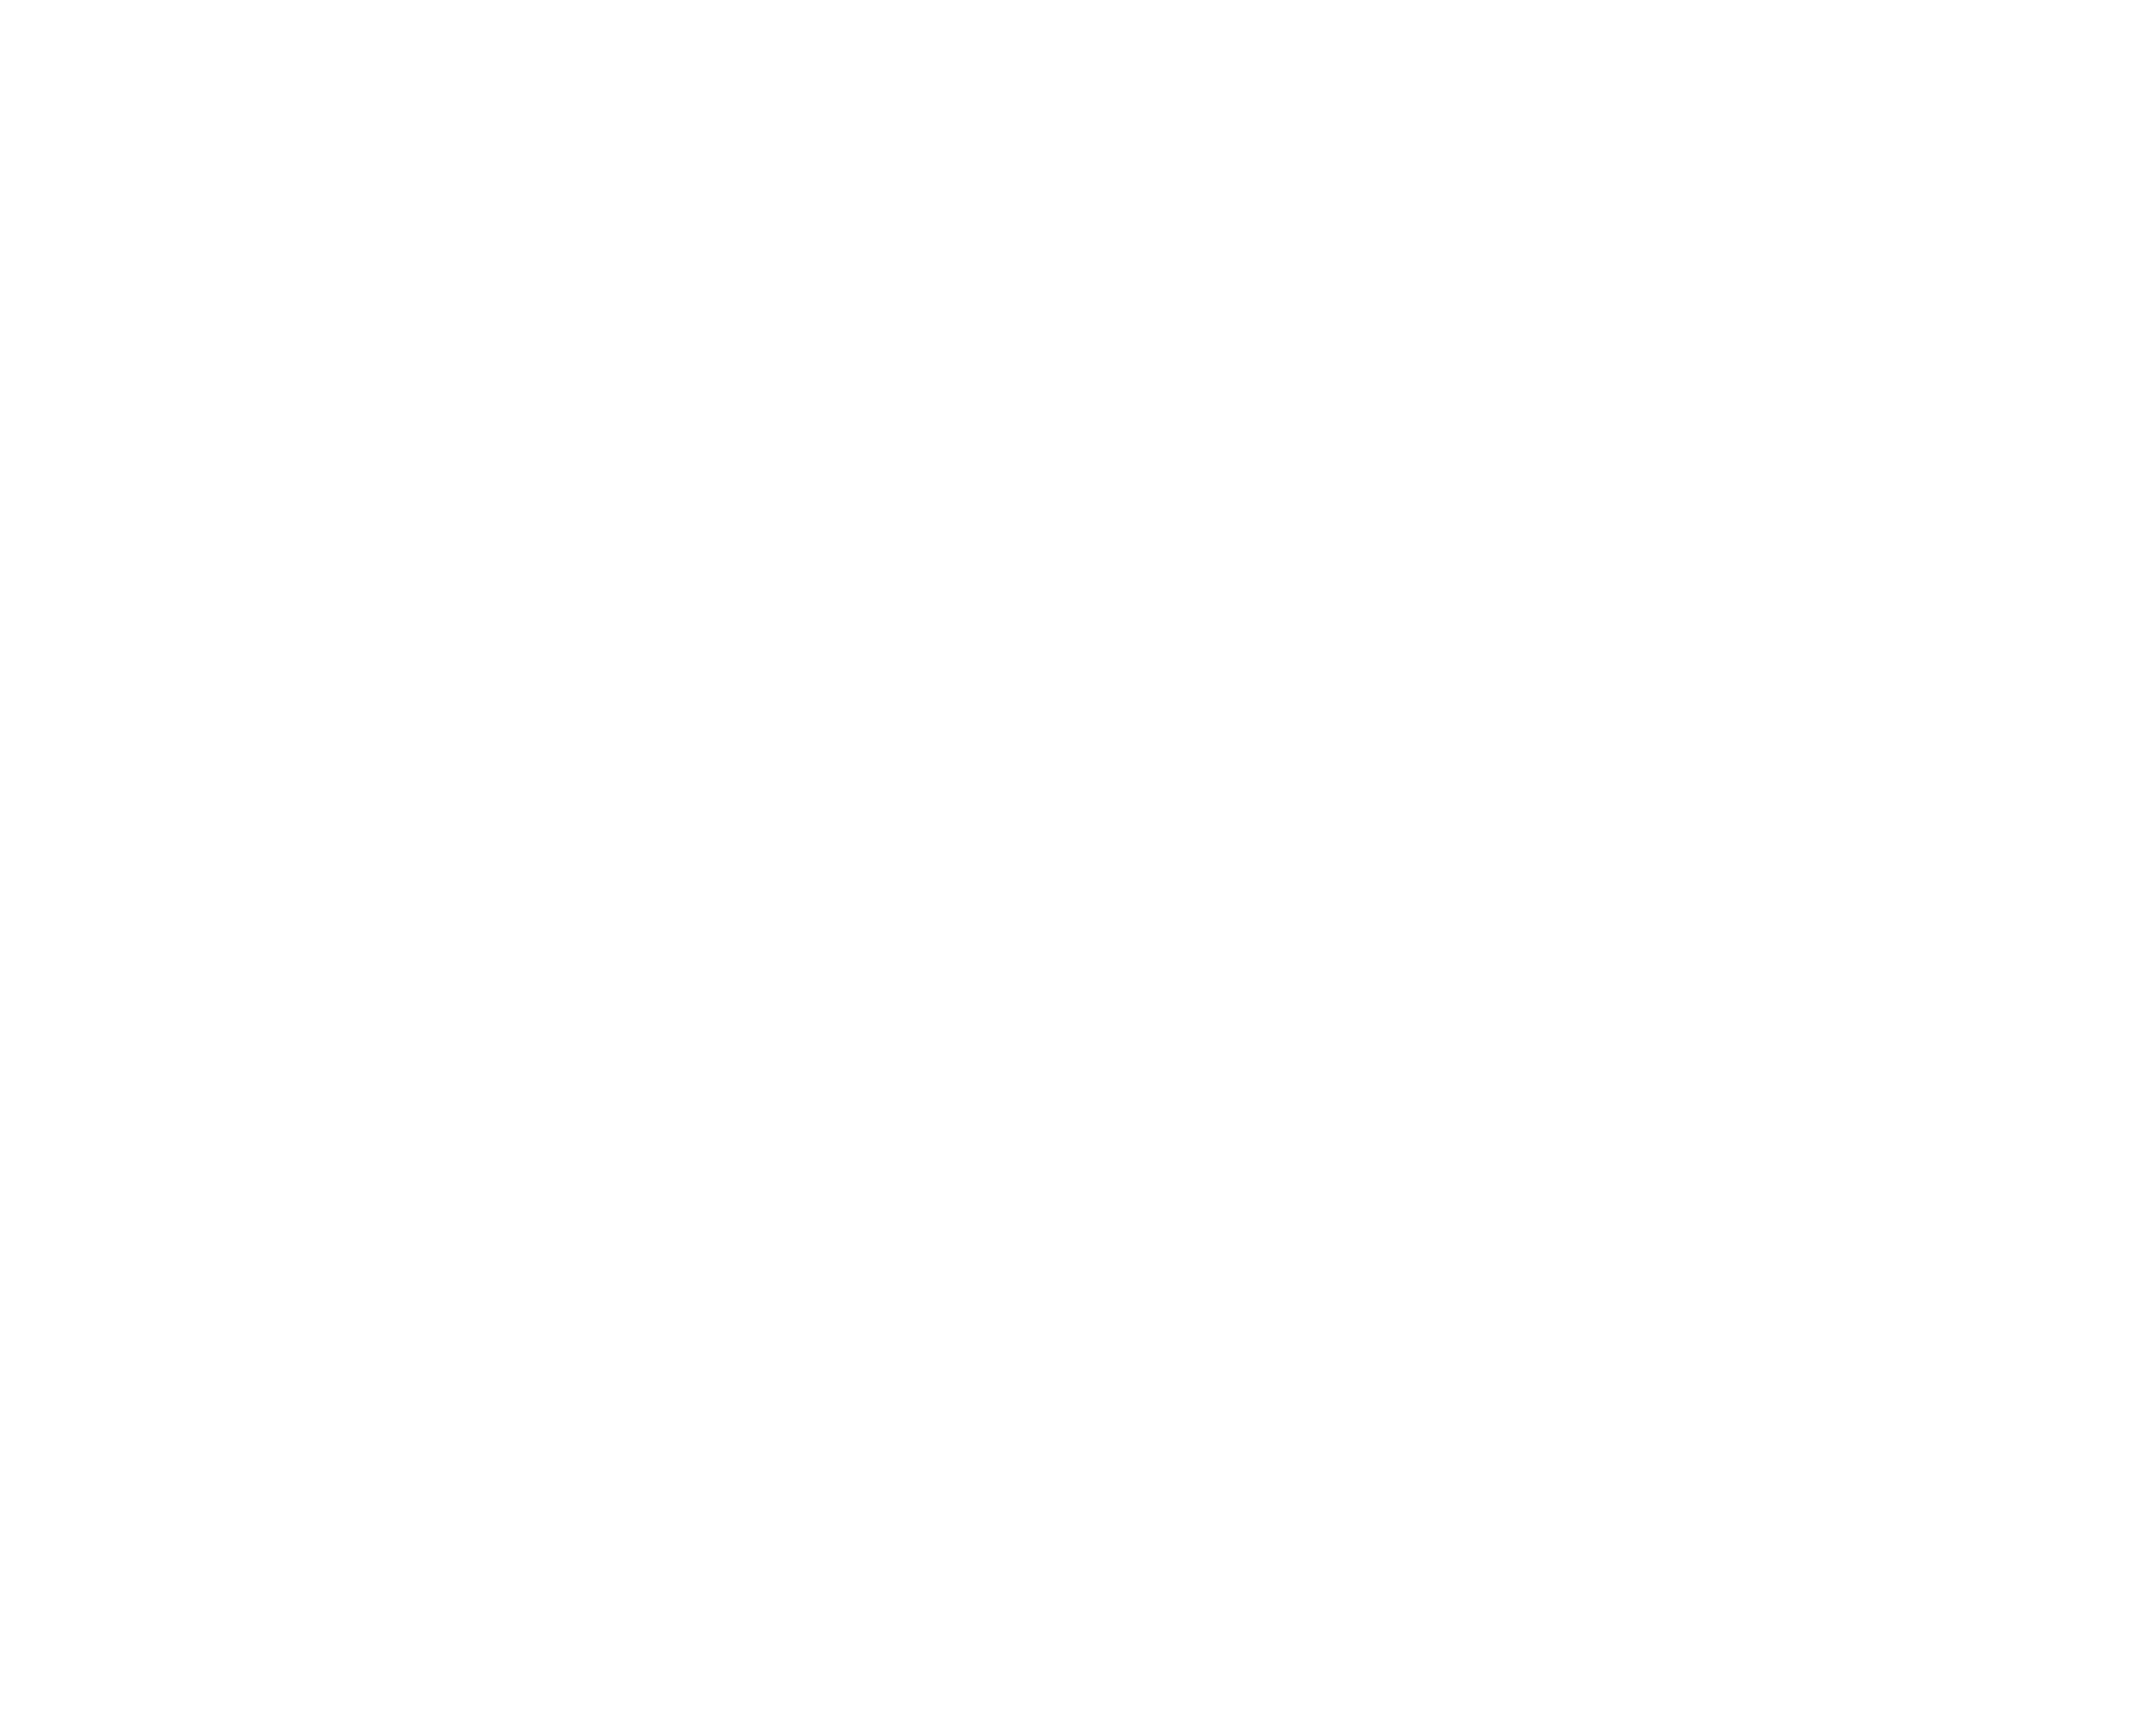 austin-luxury-homes_white.png